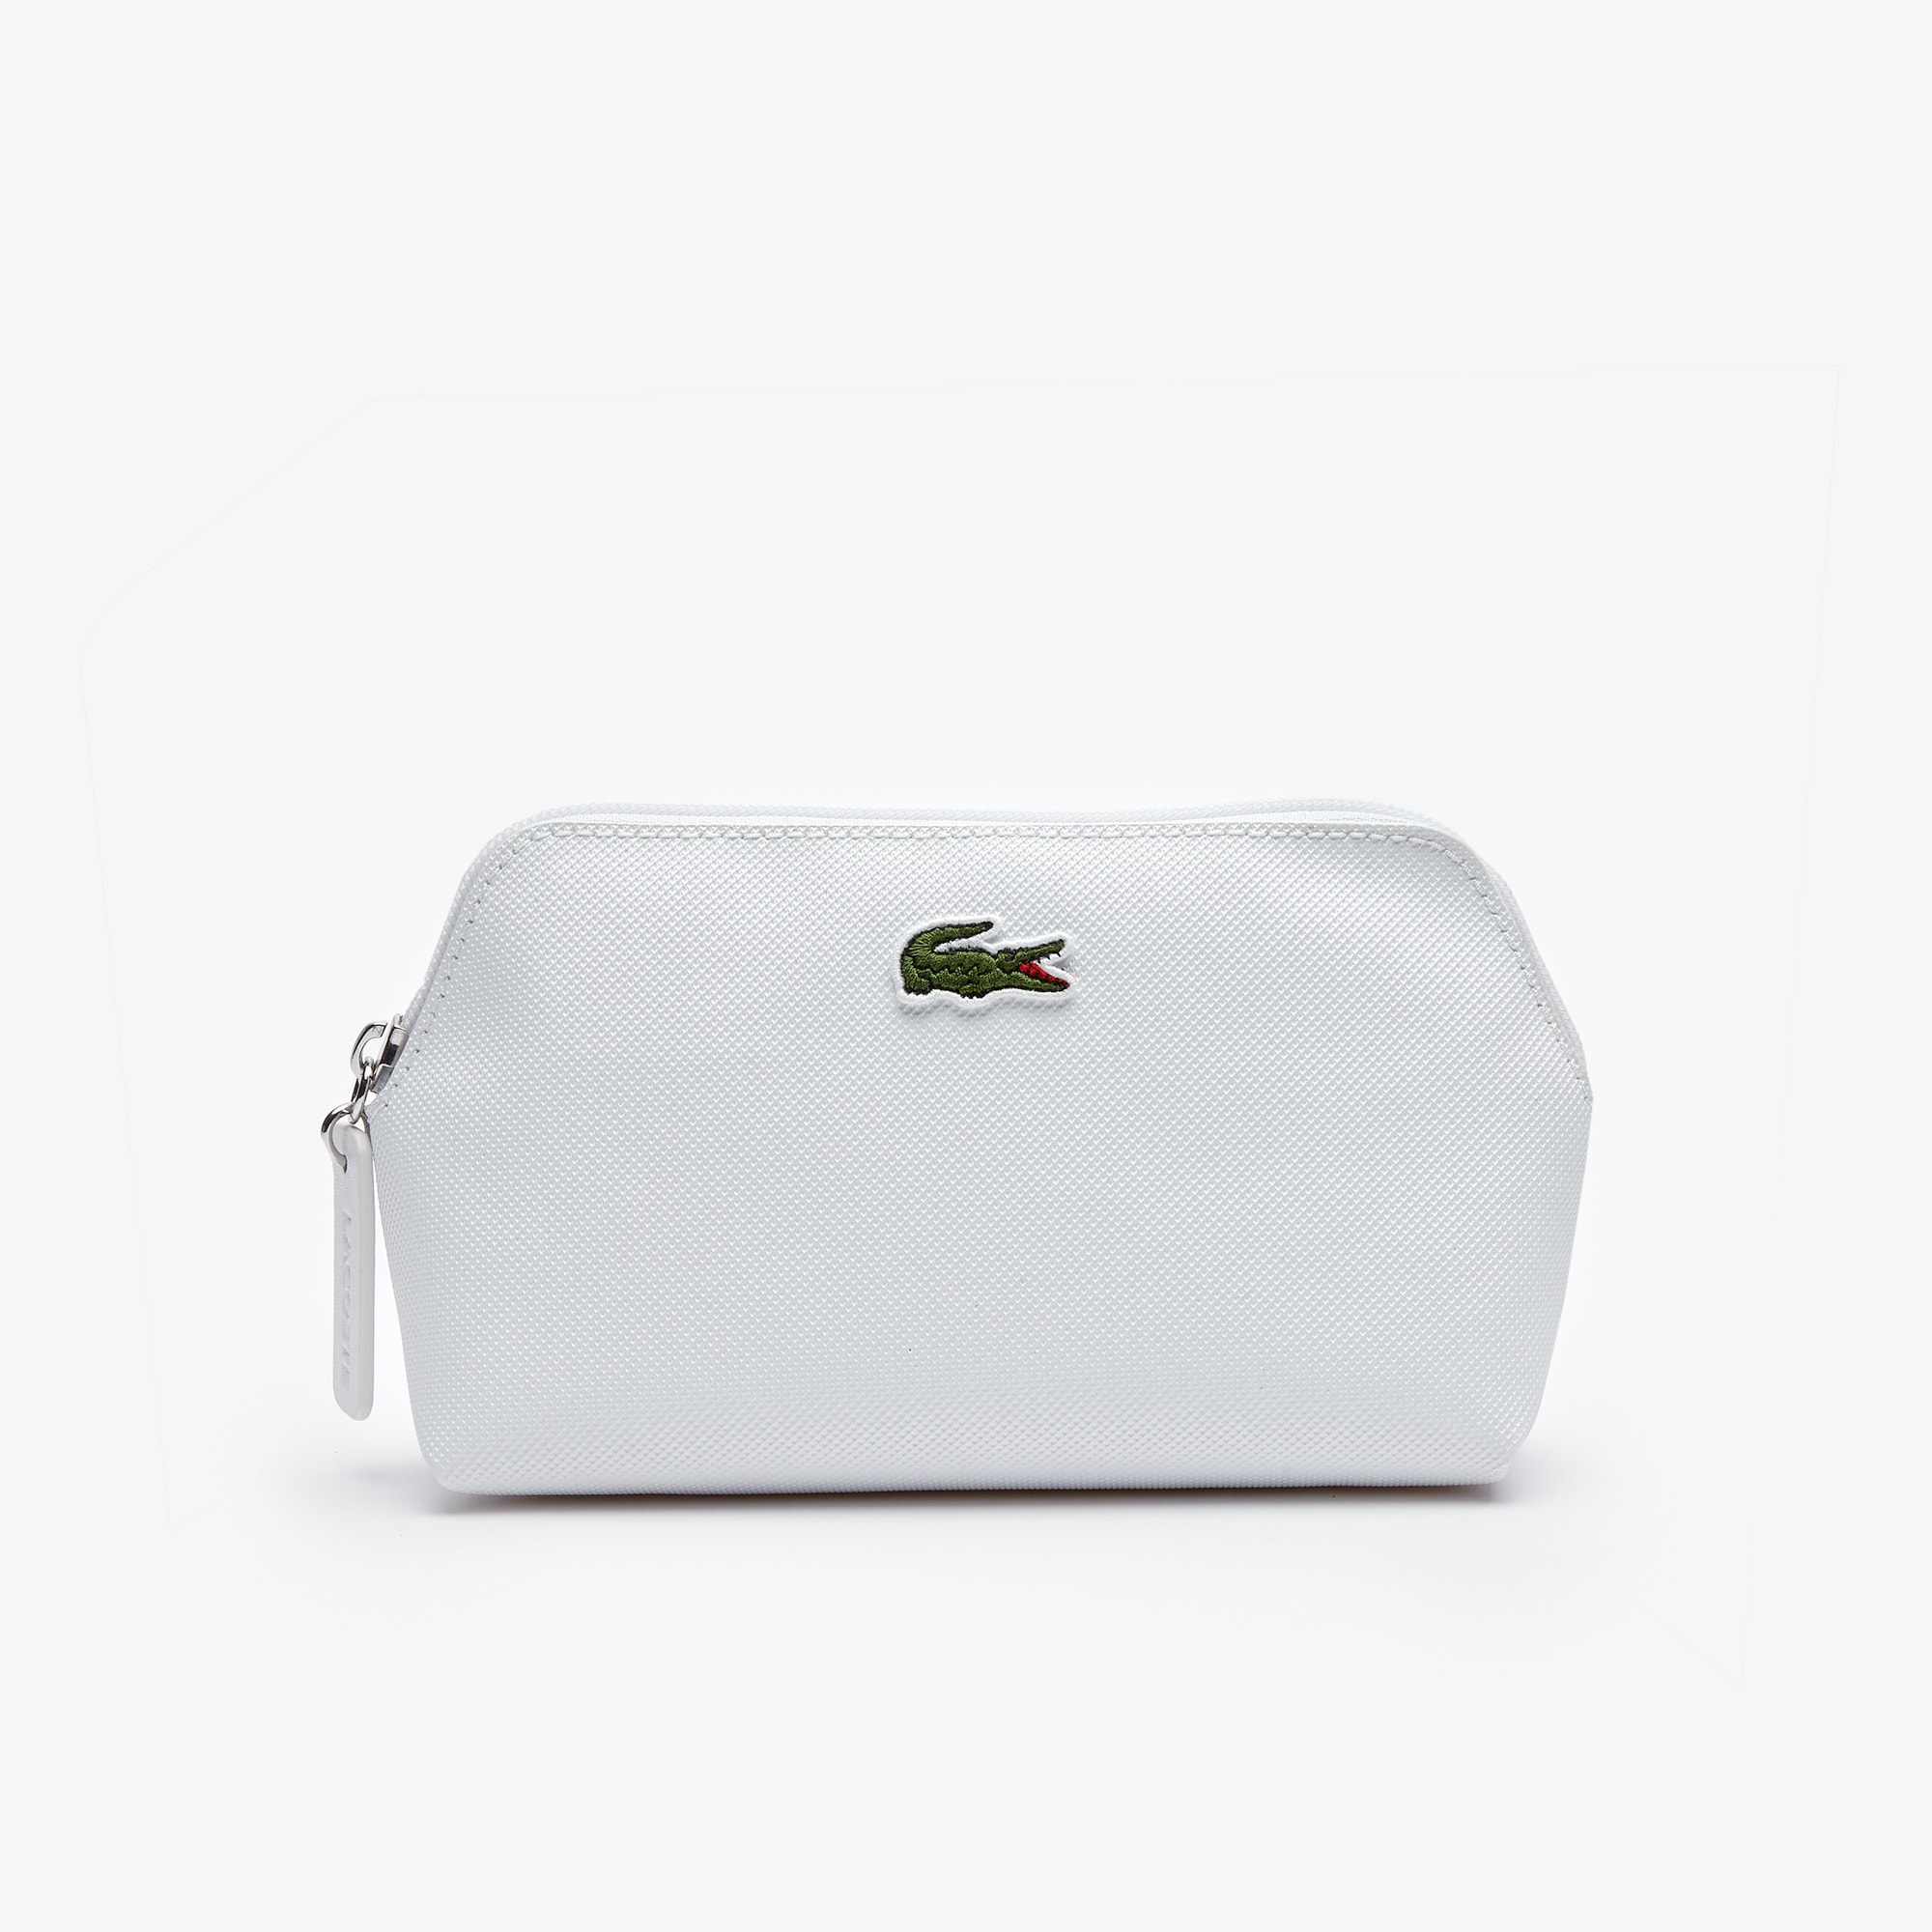 Women's L.12.12 Concept Petit Piqué Makeup Bag